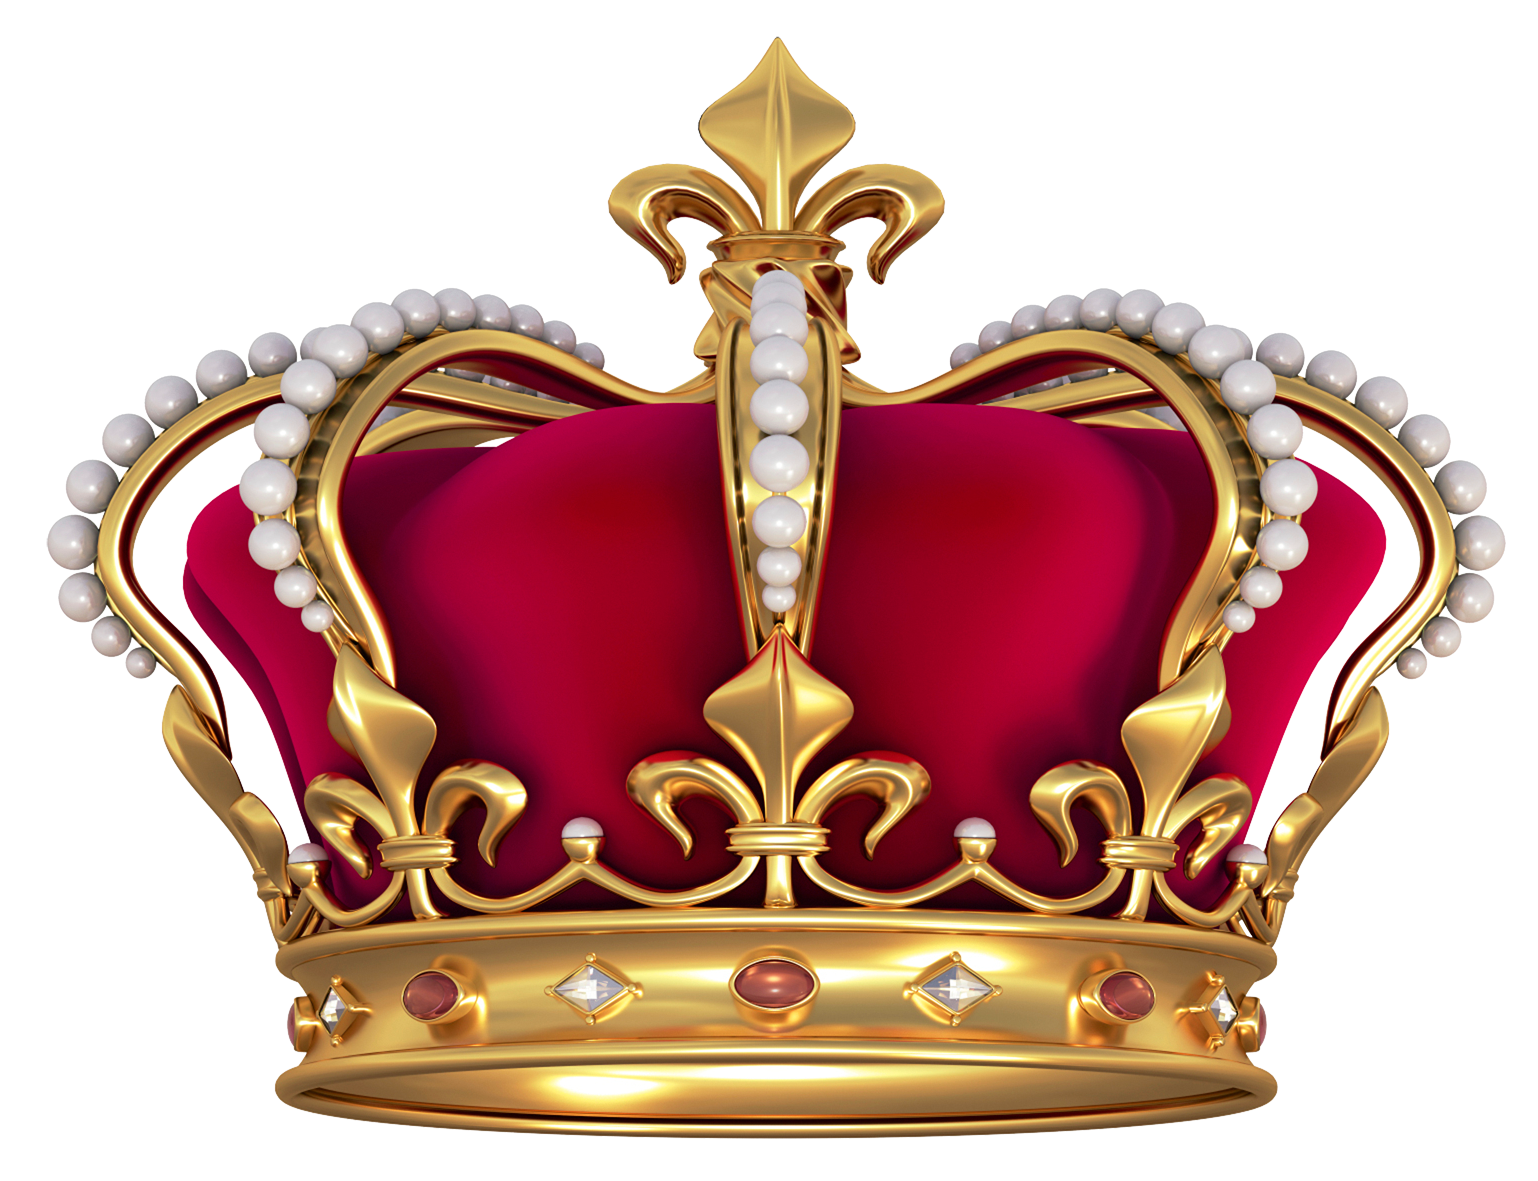 Silver and gold crown clipart png royalty free Red Gold Crown with Pearls PNG Clipart Picture | Crafting - Regal ... png royalty free